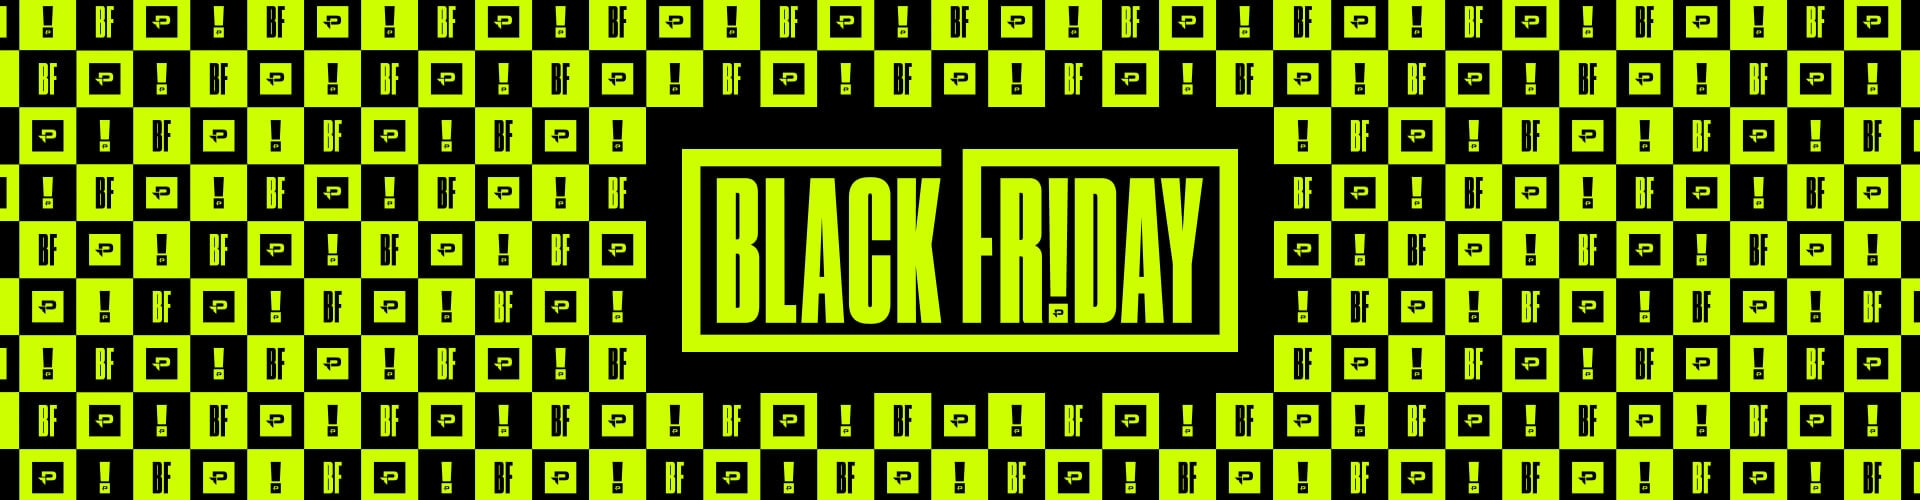 Black Freday Black Friday 2018 Fußball Deals Pro Direct Soccer